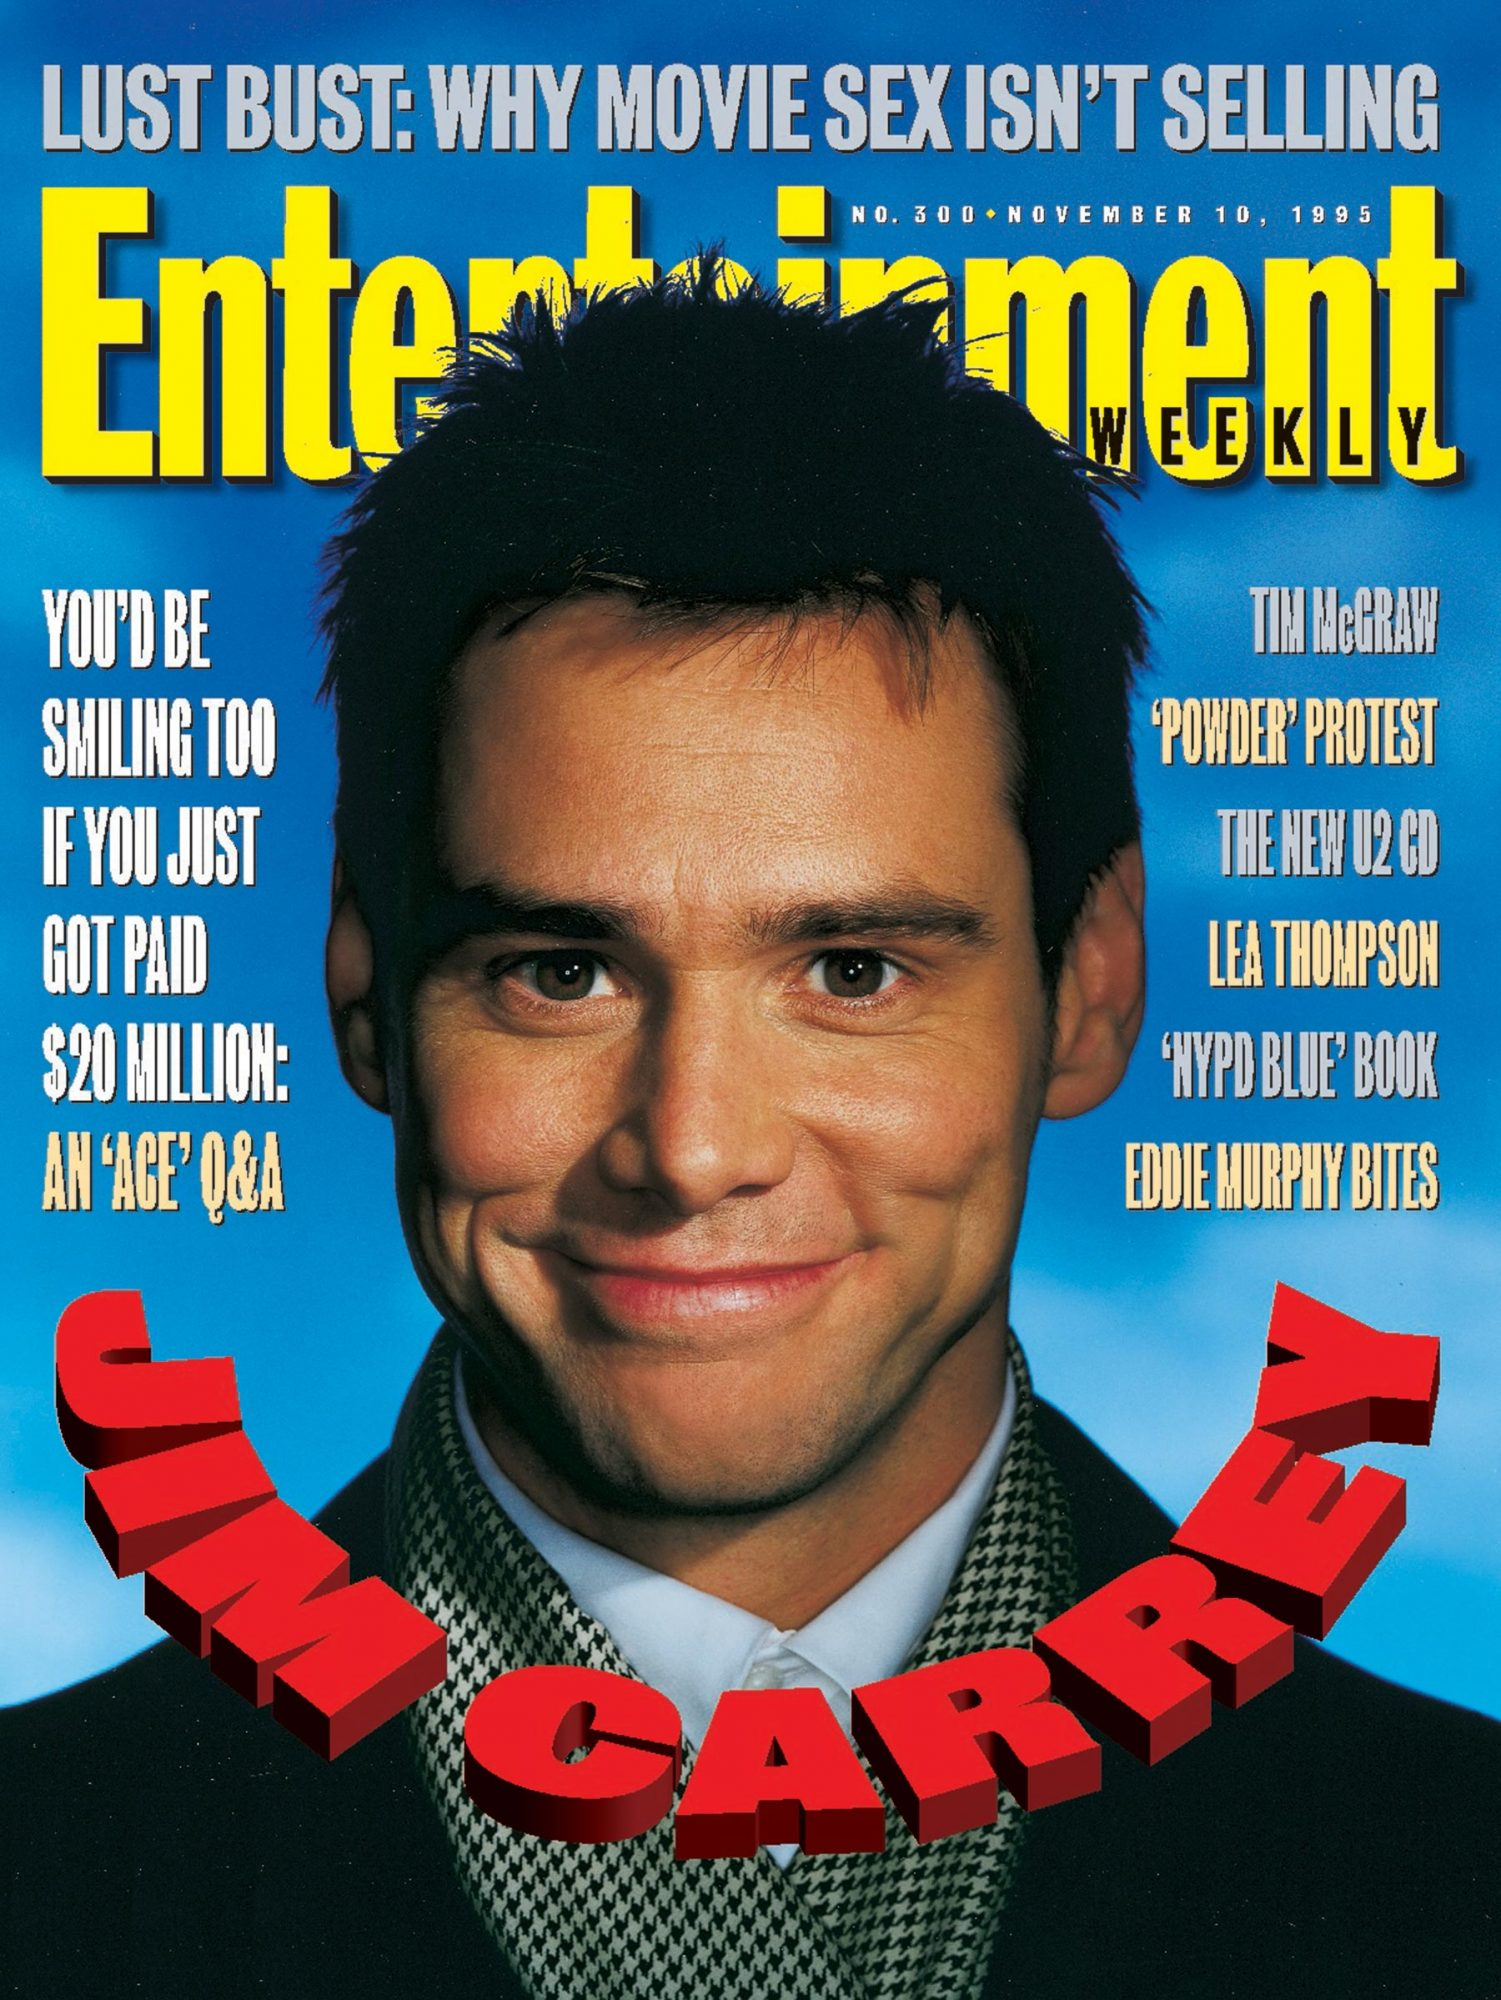 Entertainment WeeklyJim CarreyNovember 10, 1995# 300